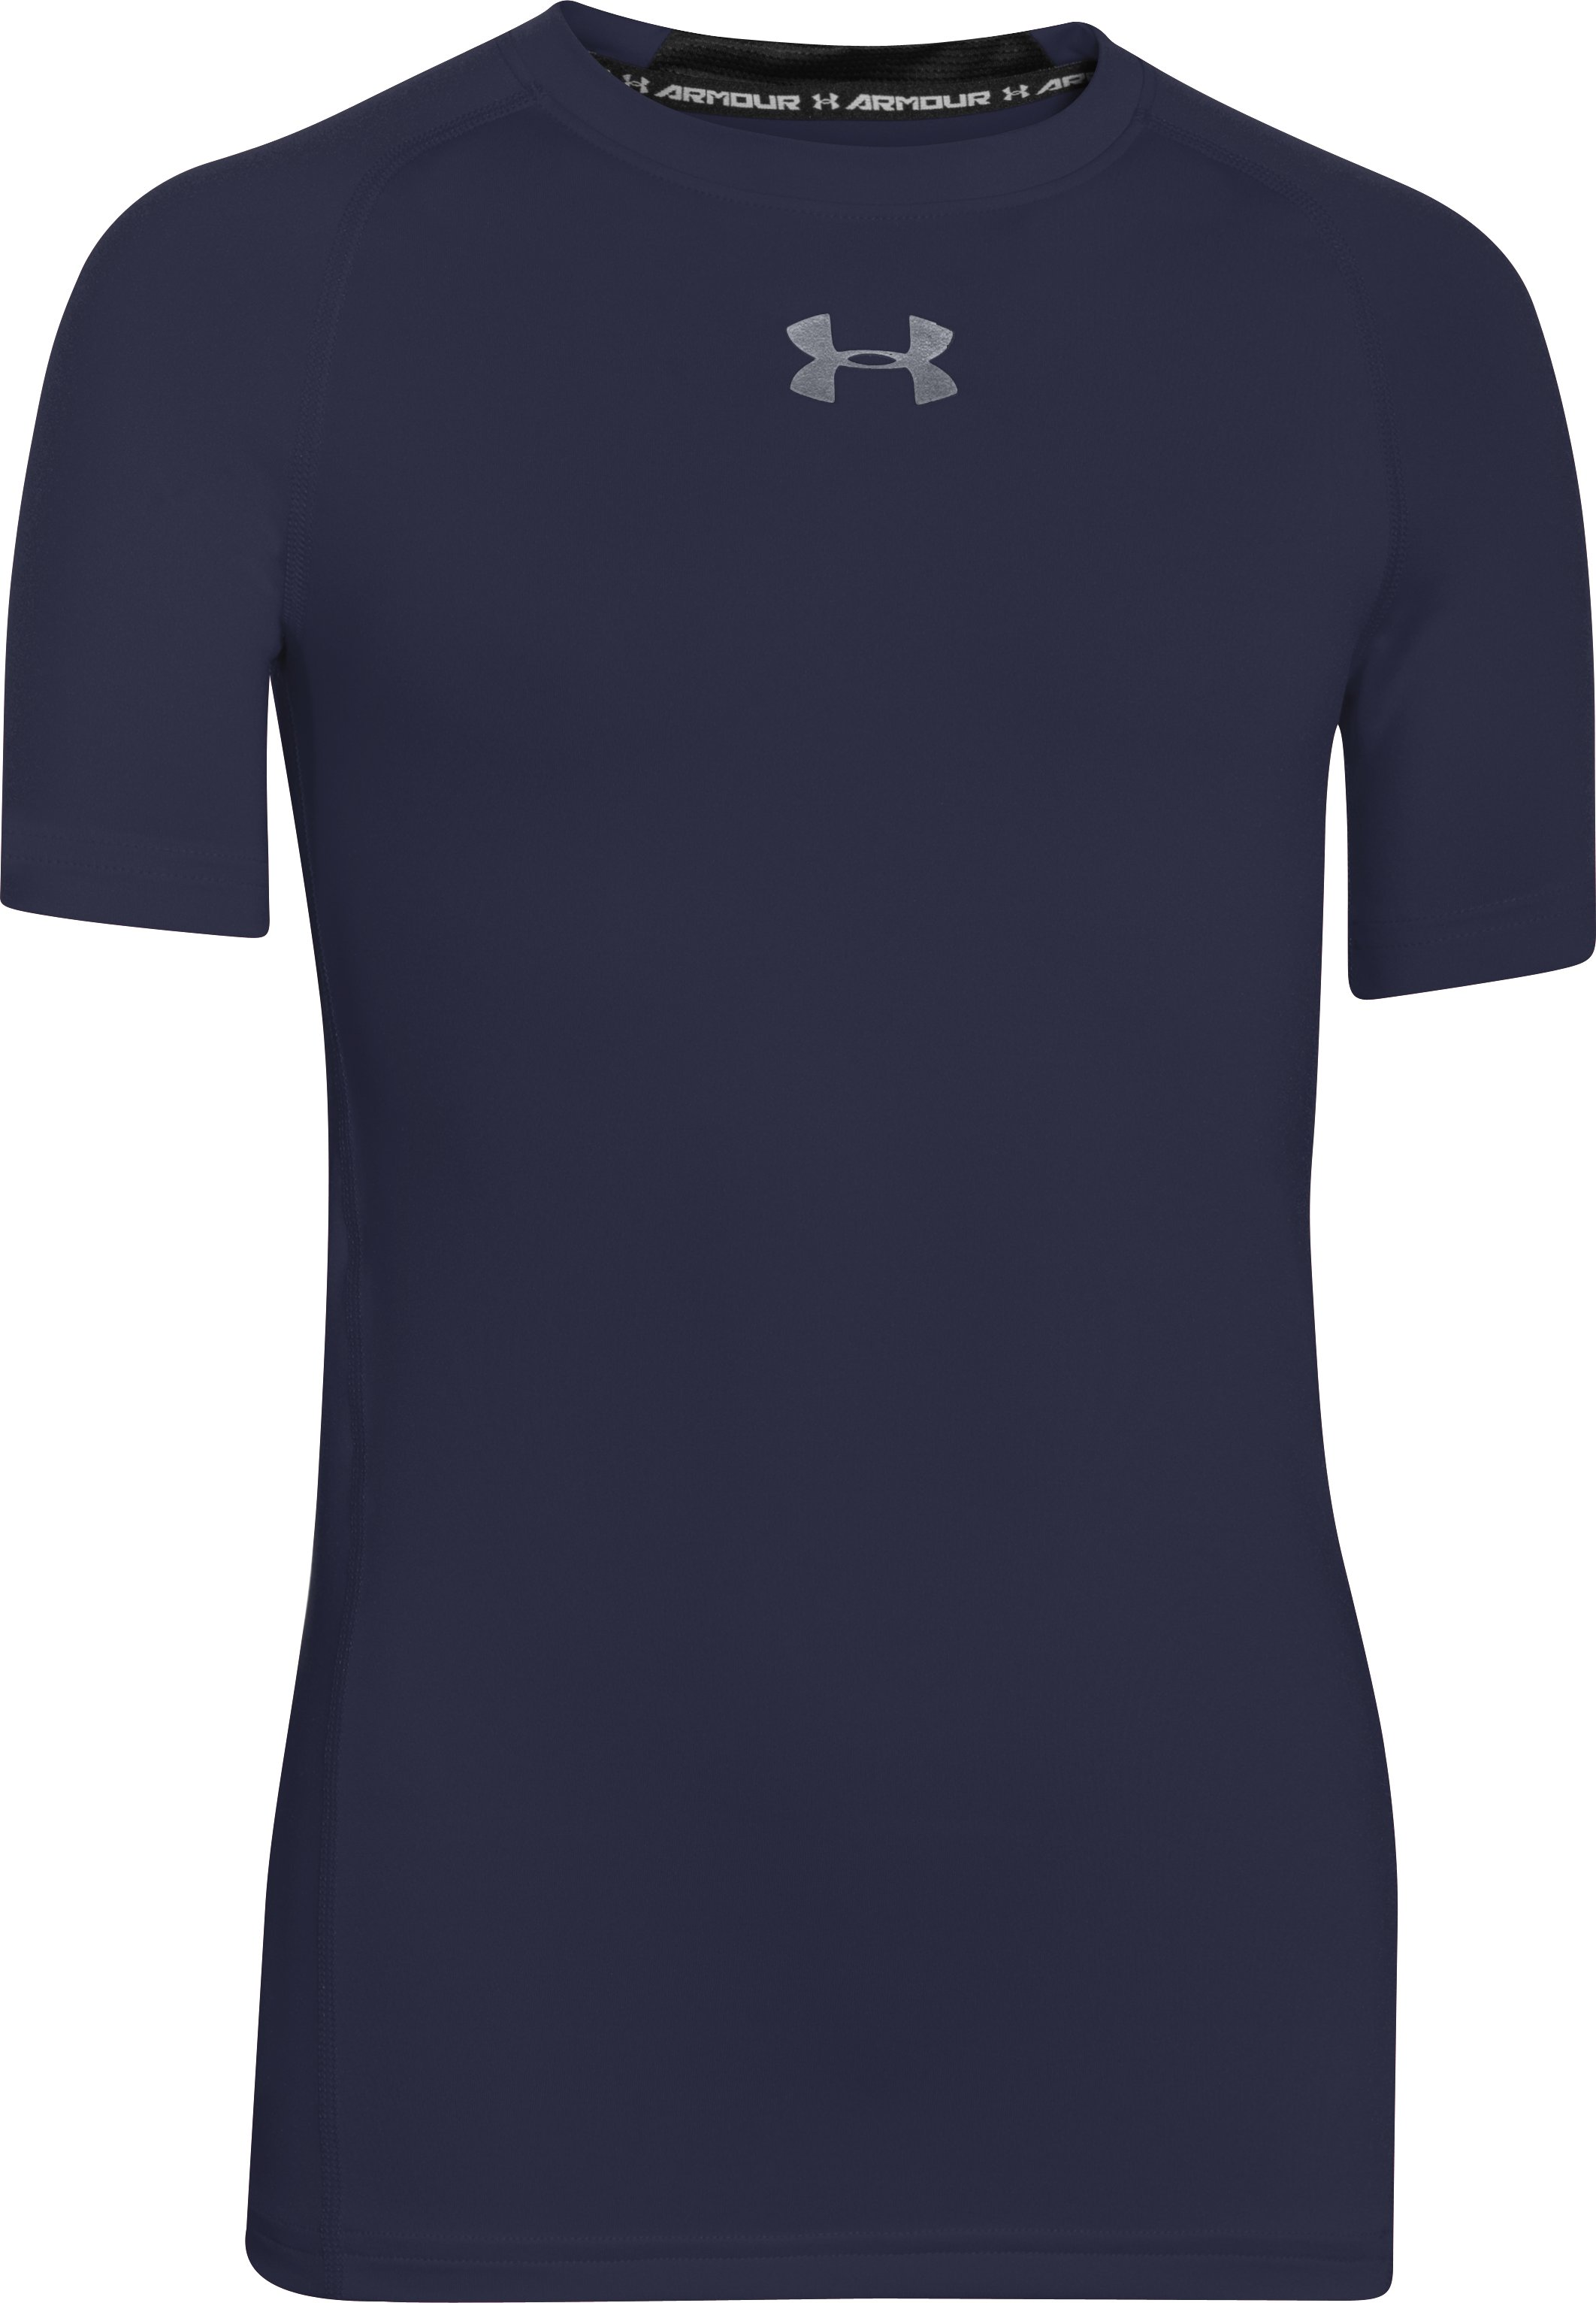 Boys' UA HeatGear® Armour Short Sleeve Fitted Shirt, Midnight Navy, zoomed image